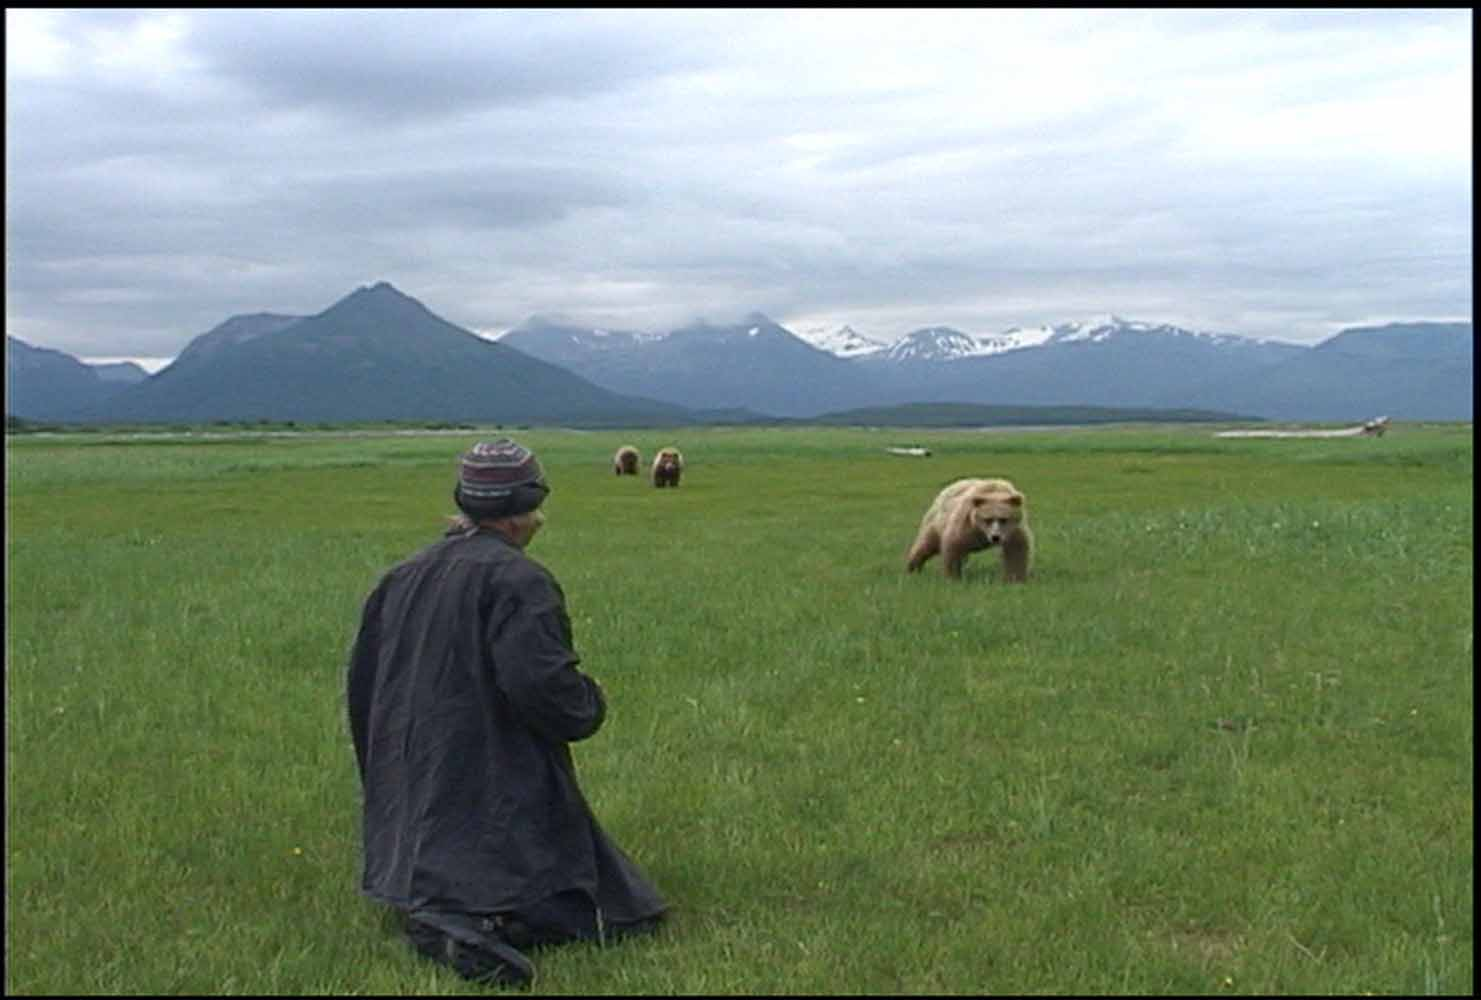 Timothy treadwell grizzly man